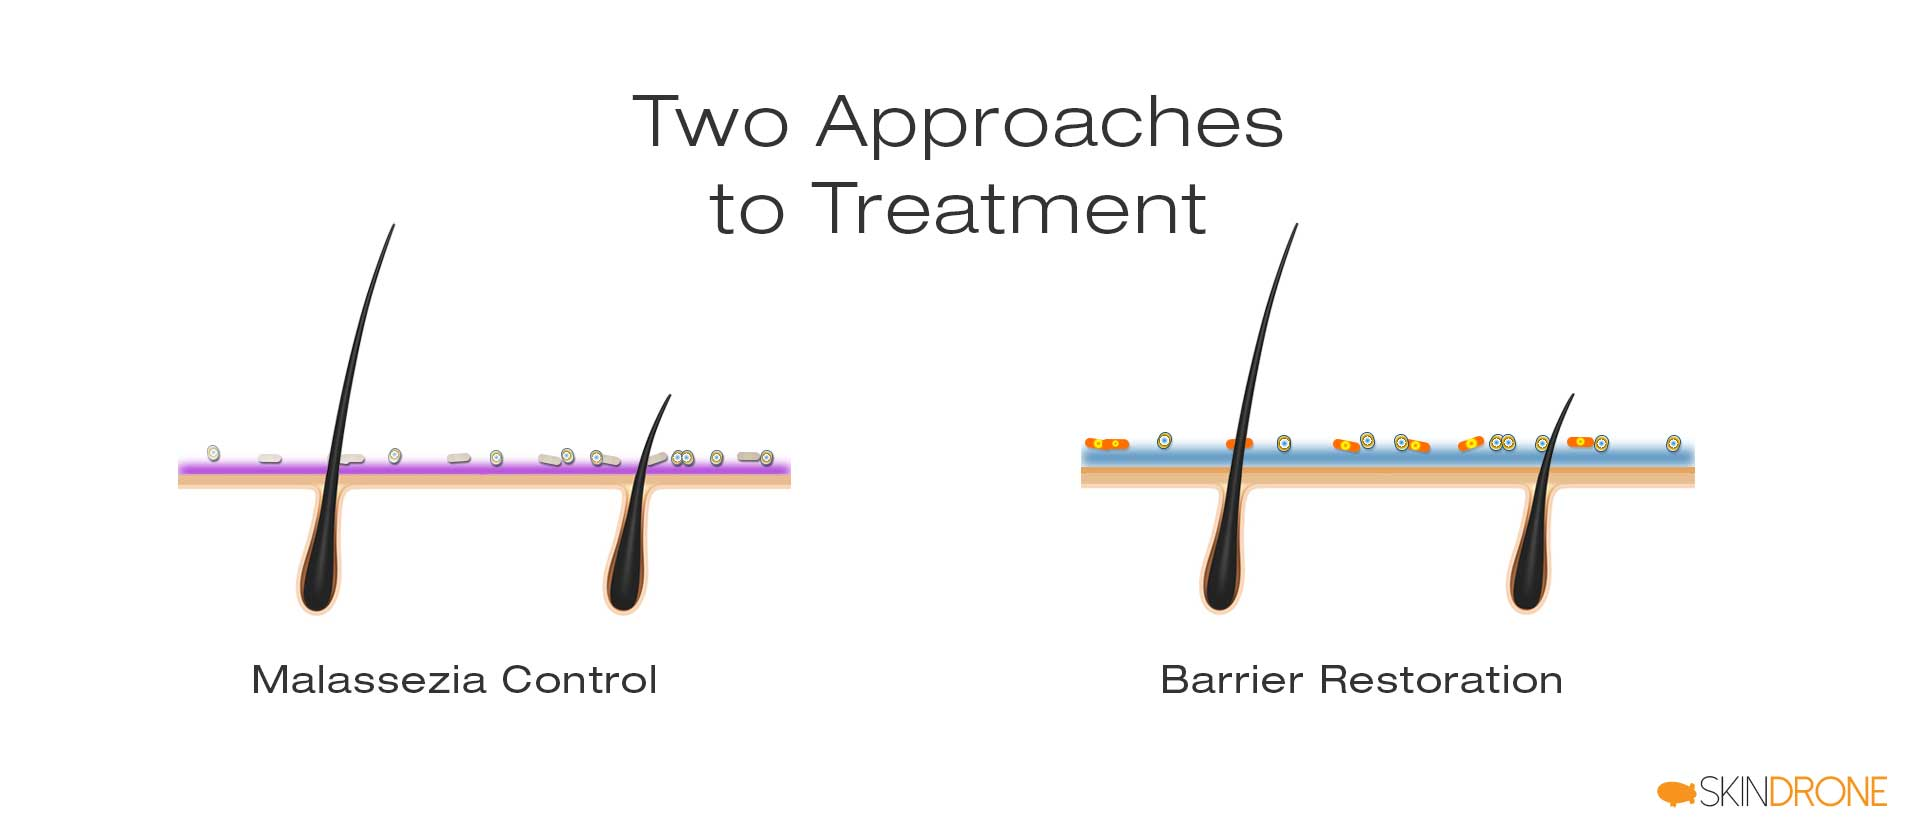 Two primary treatment approaches to scalp seborrheic dermatitis - malassezia control and barrier restoration